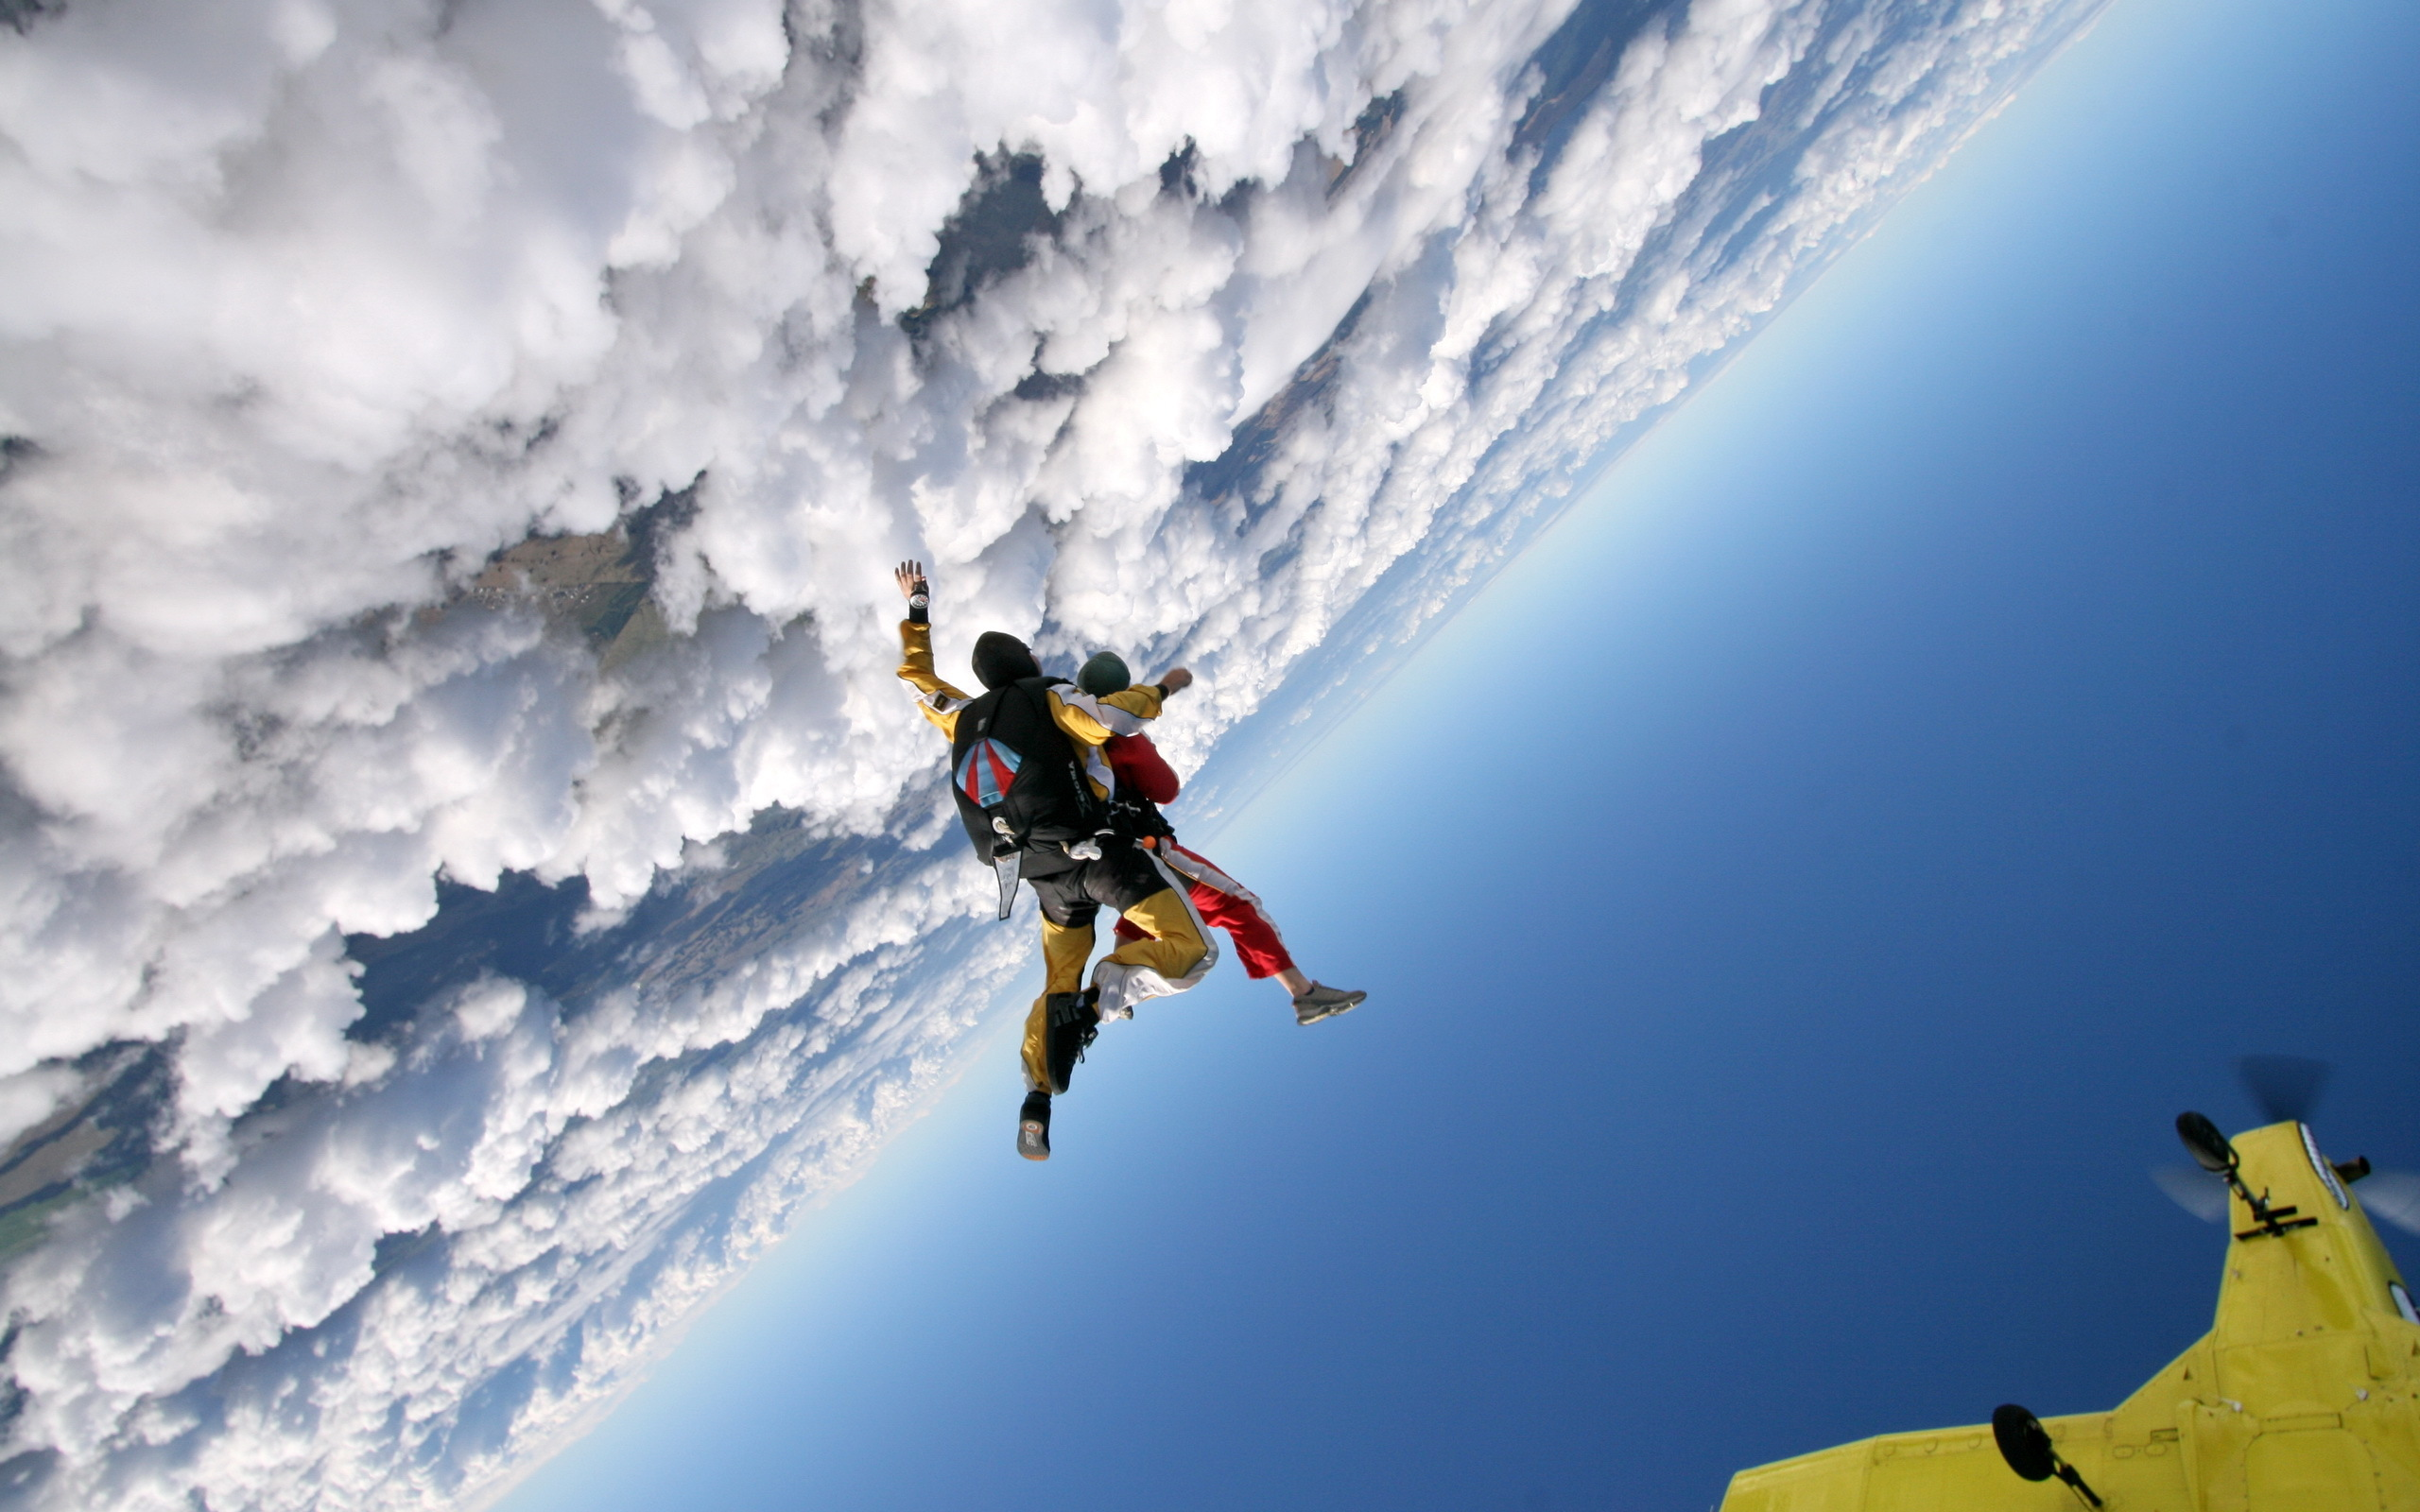 ... Skydive Wallpaper · Skydive Wallpaper